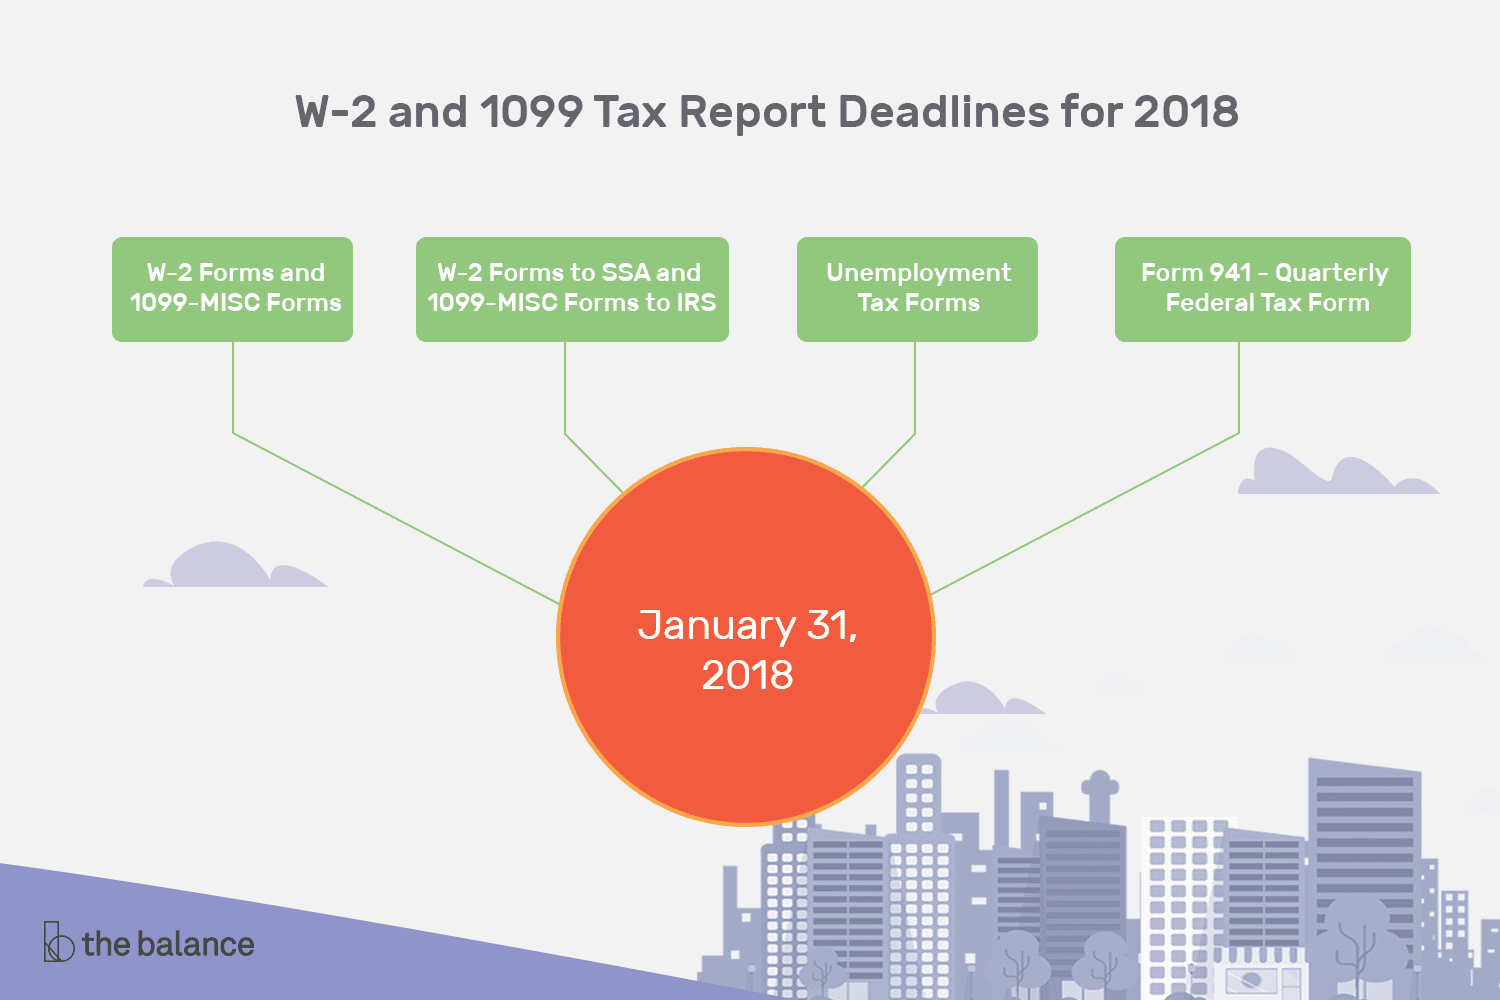 W-2 and 1099 Deadlines for 2018 Payroll Tax Reports